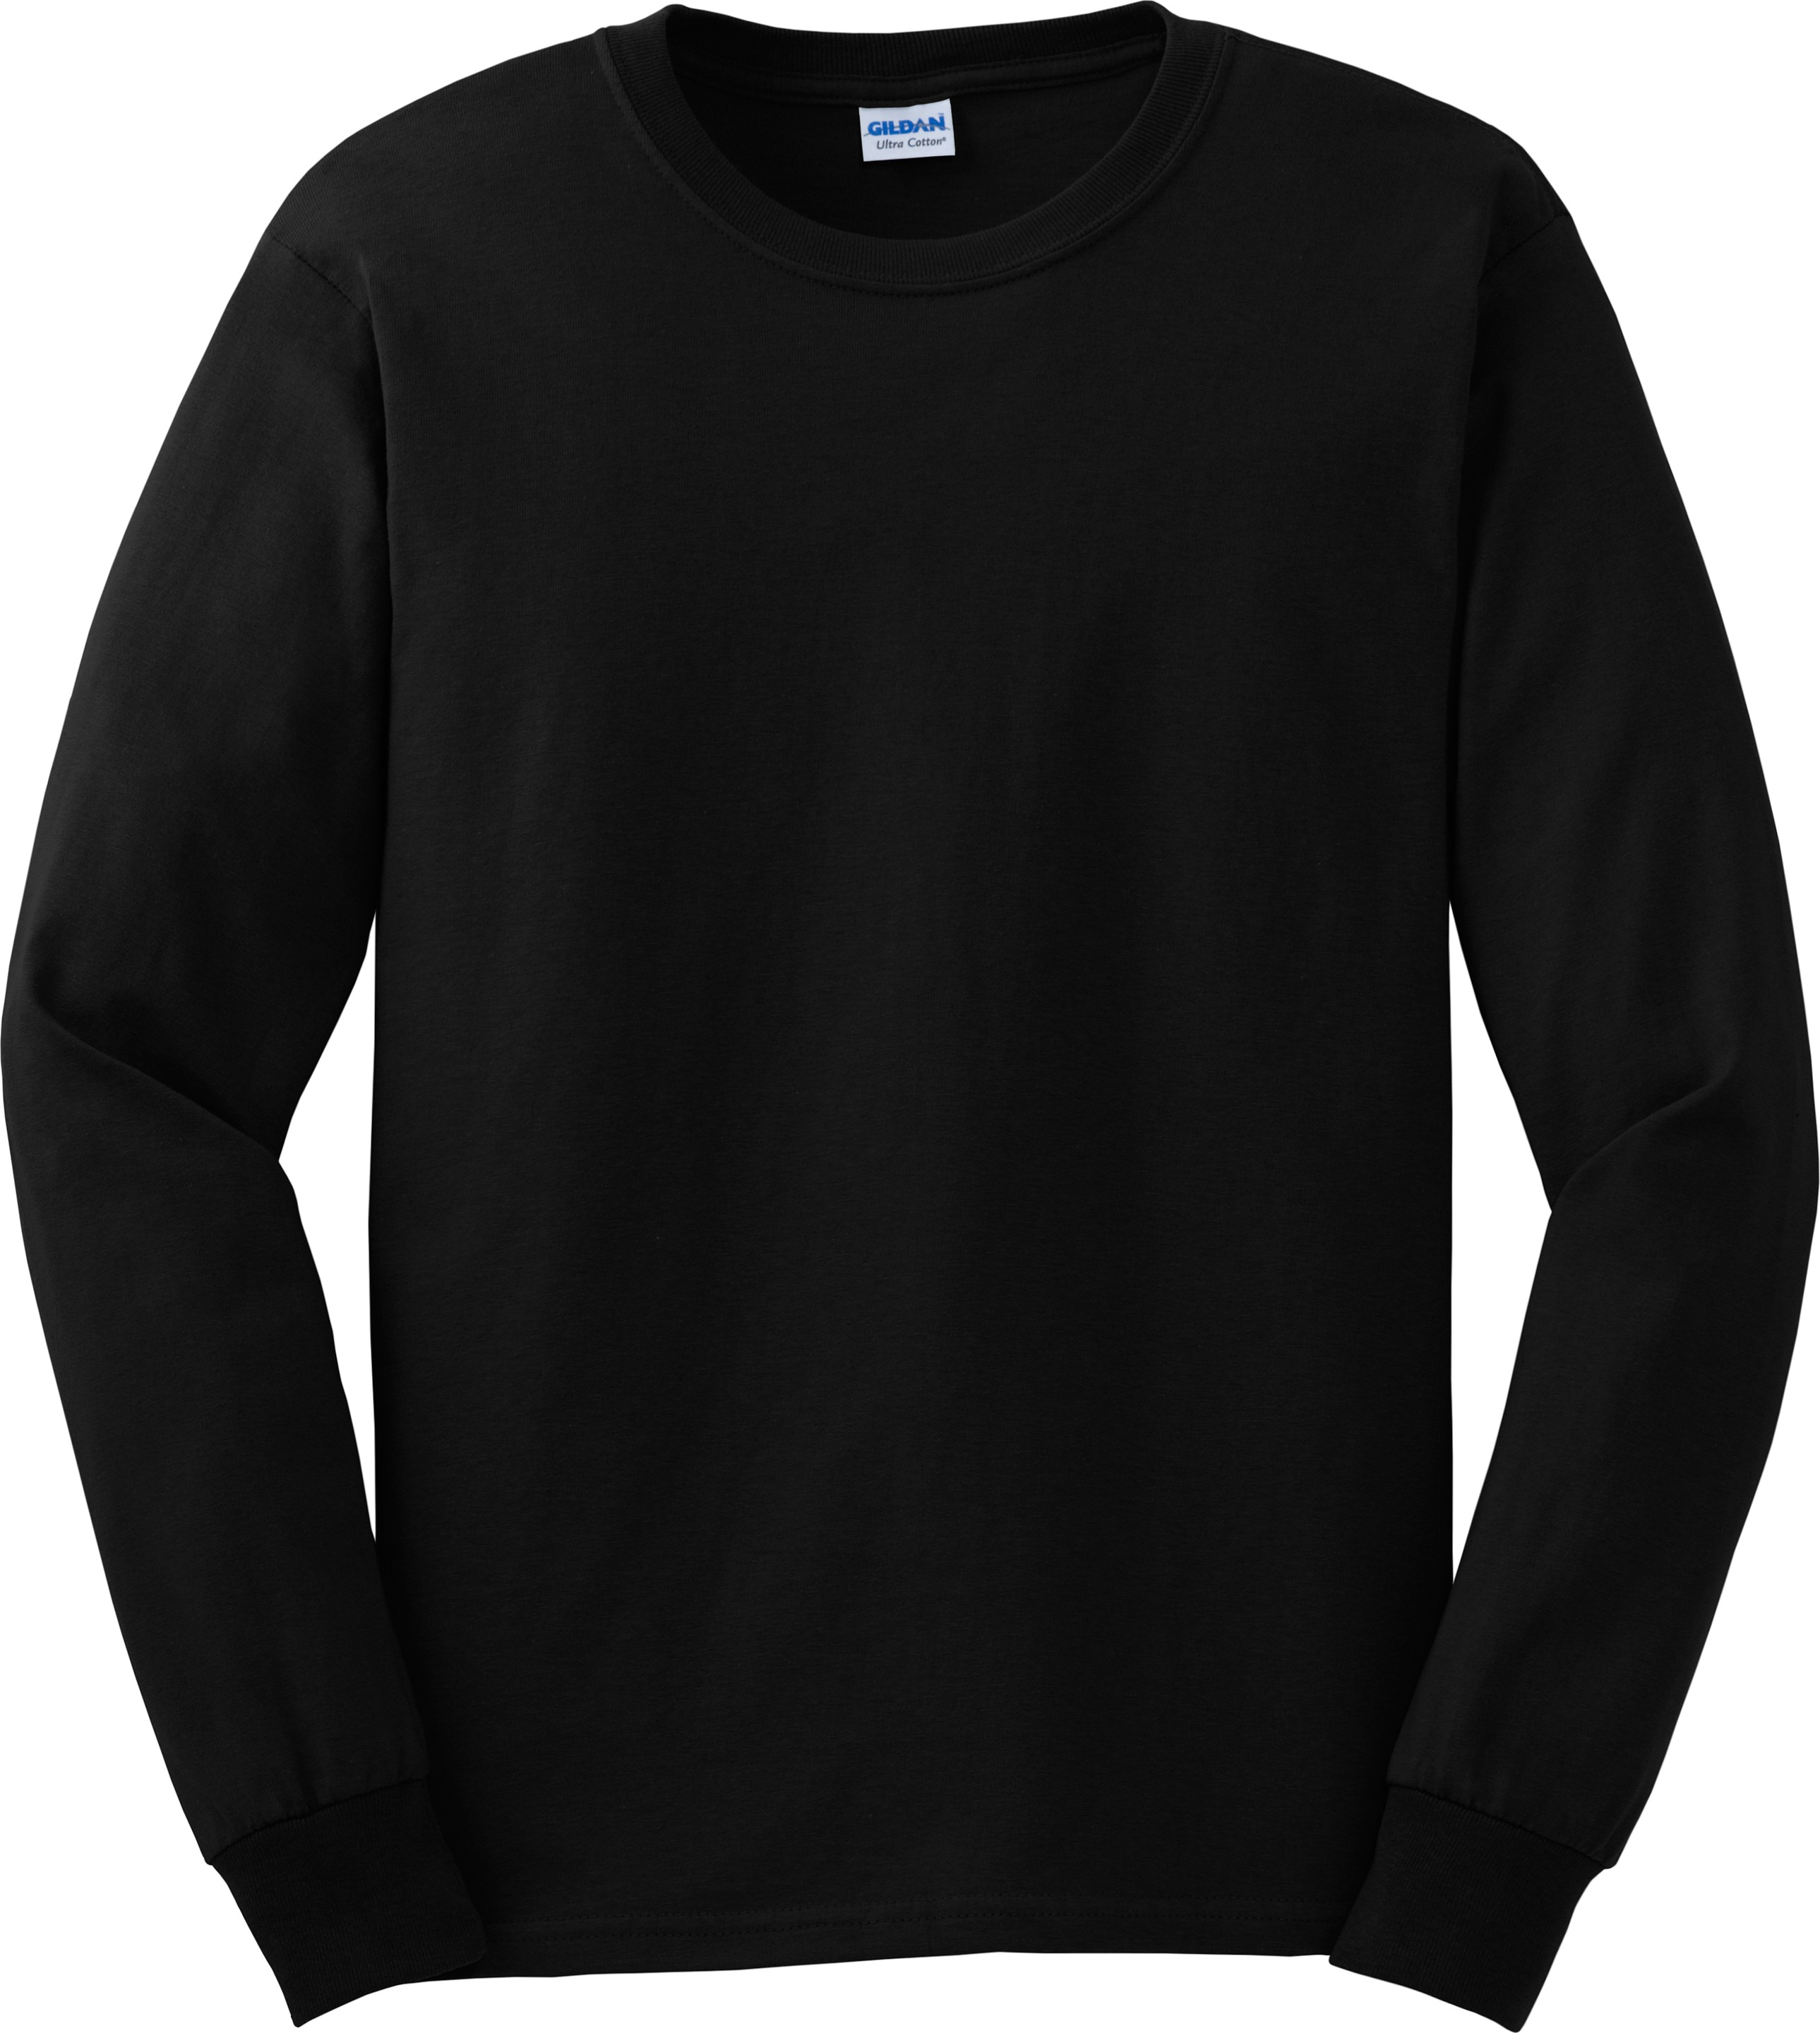 Black Long Sleeve Blank Shirt